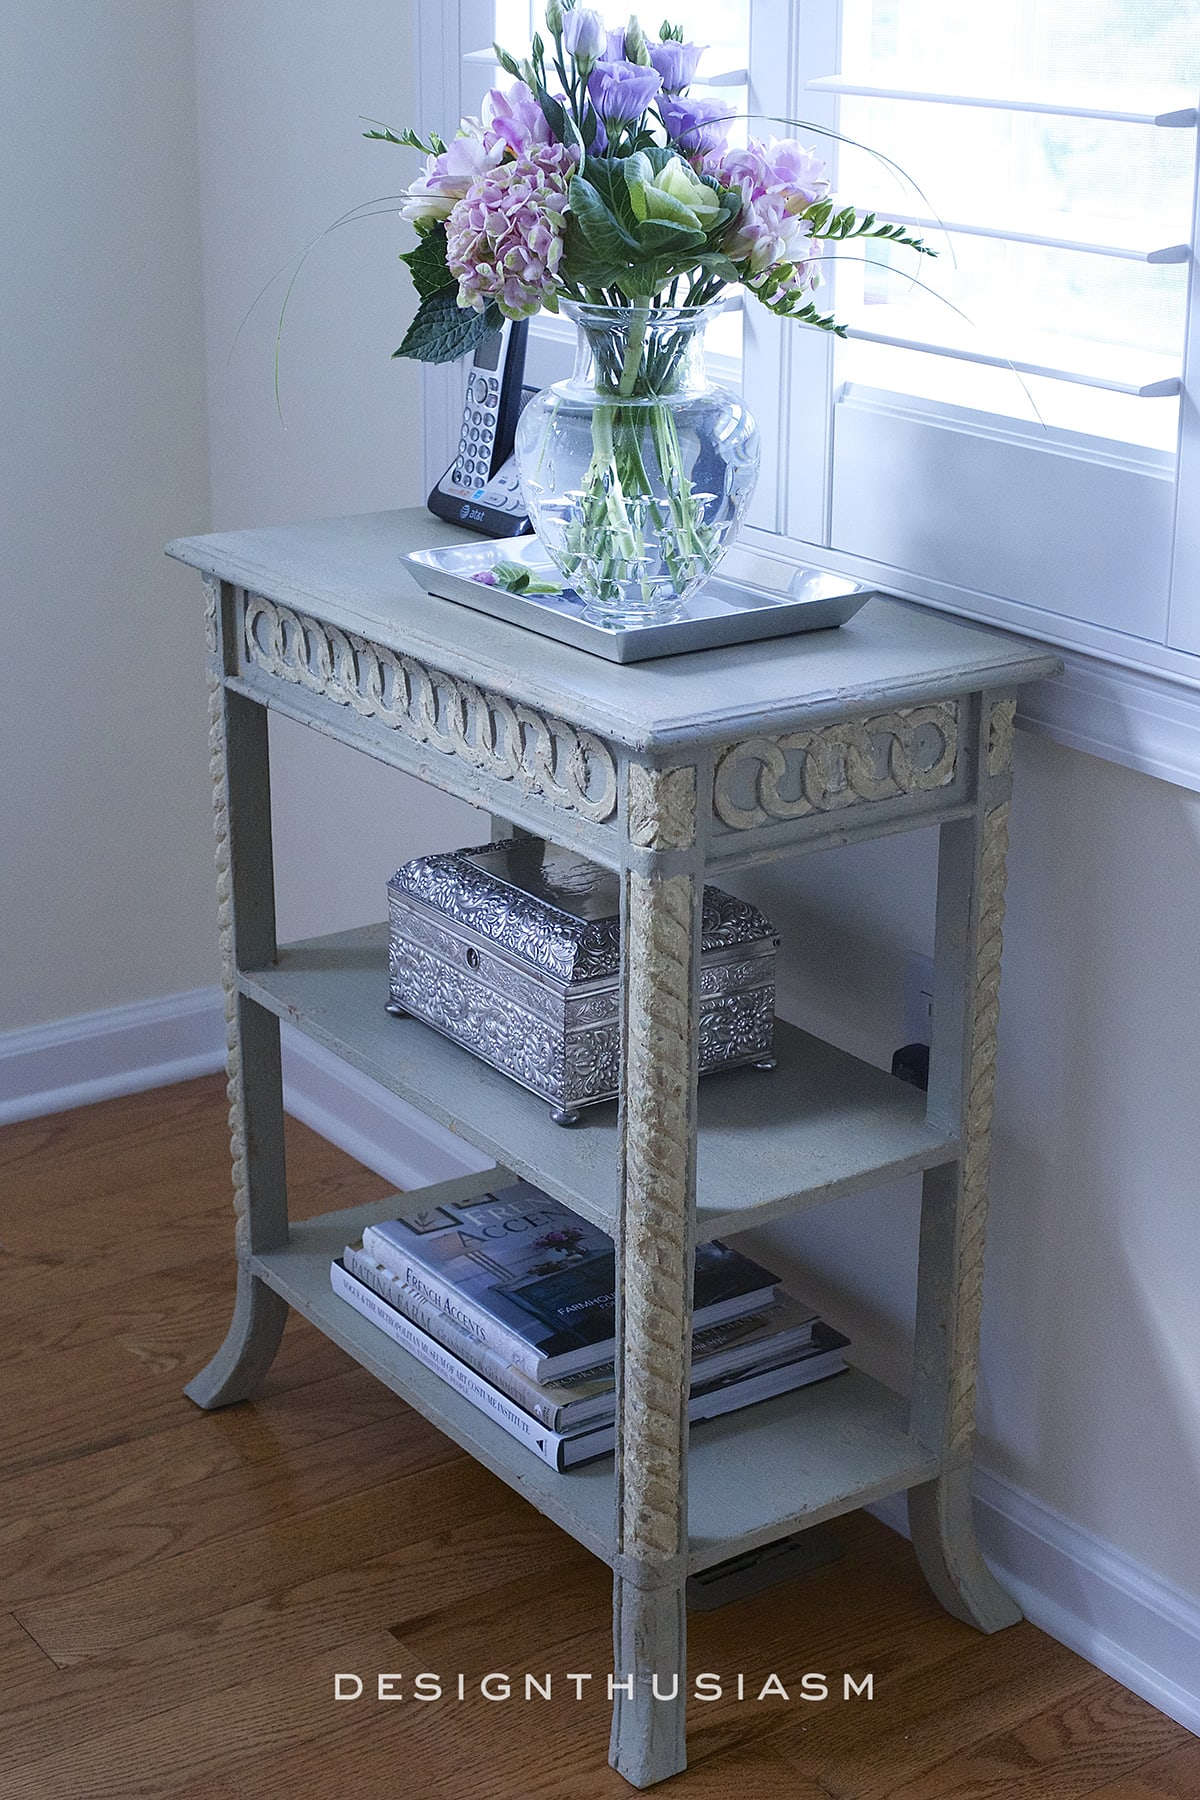 Choosing A French Country Accent Table For A Small Space